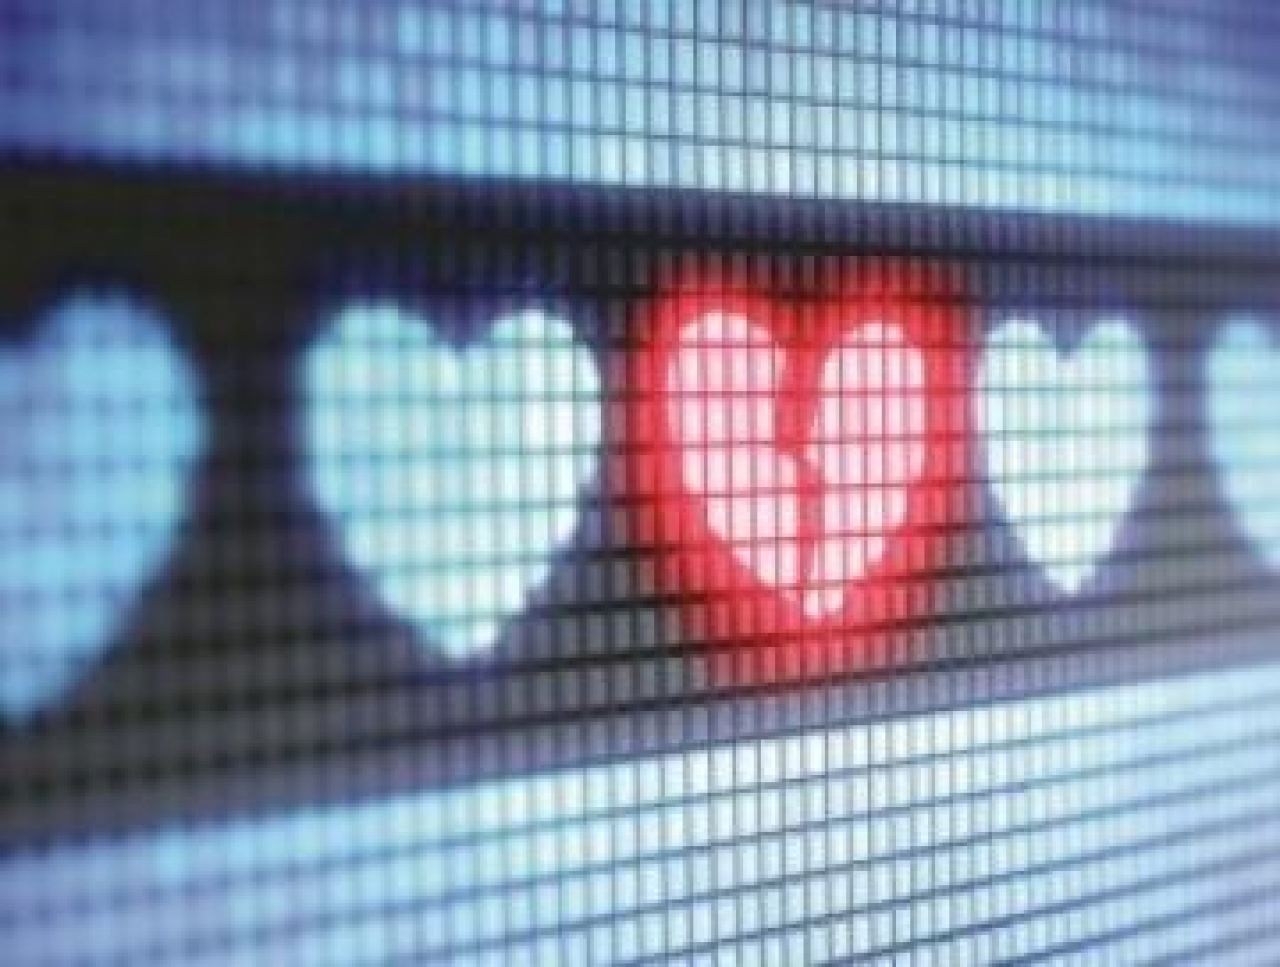 'Romance baiting' lures victims as dating scams rise, warns ACCC